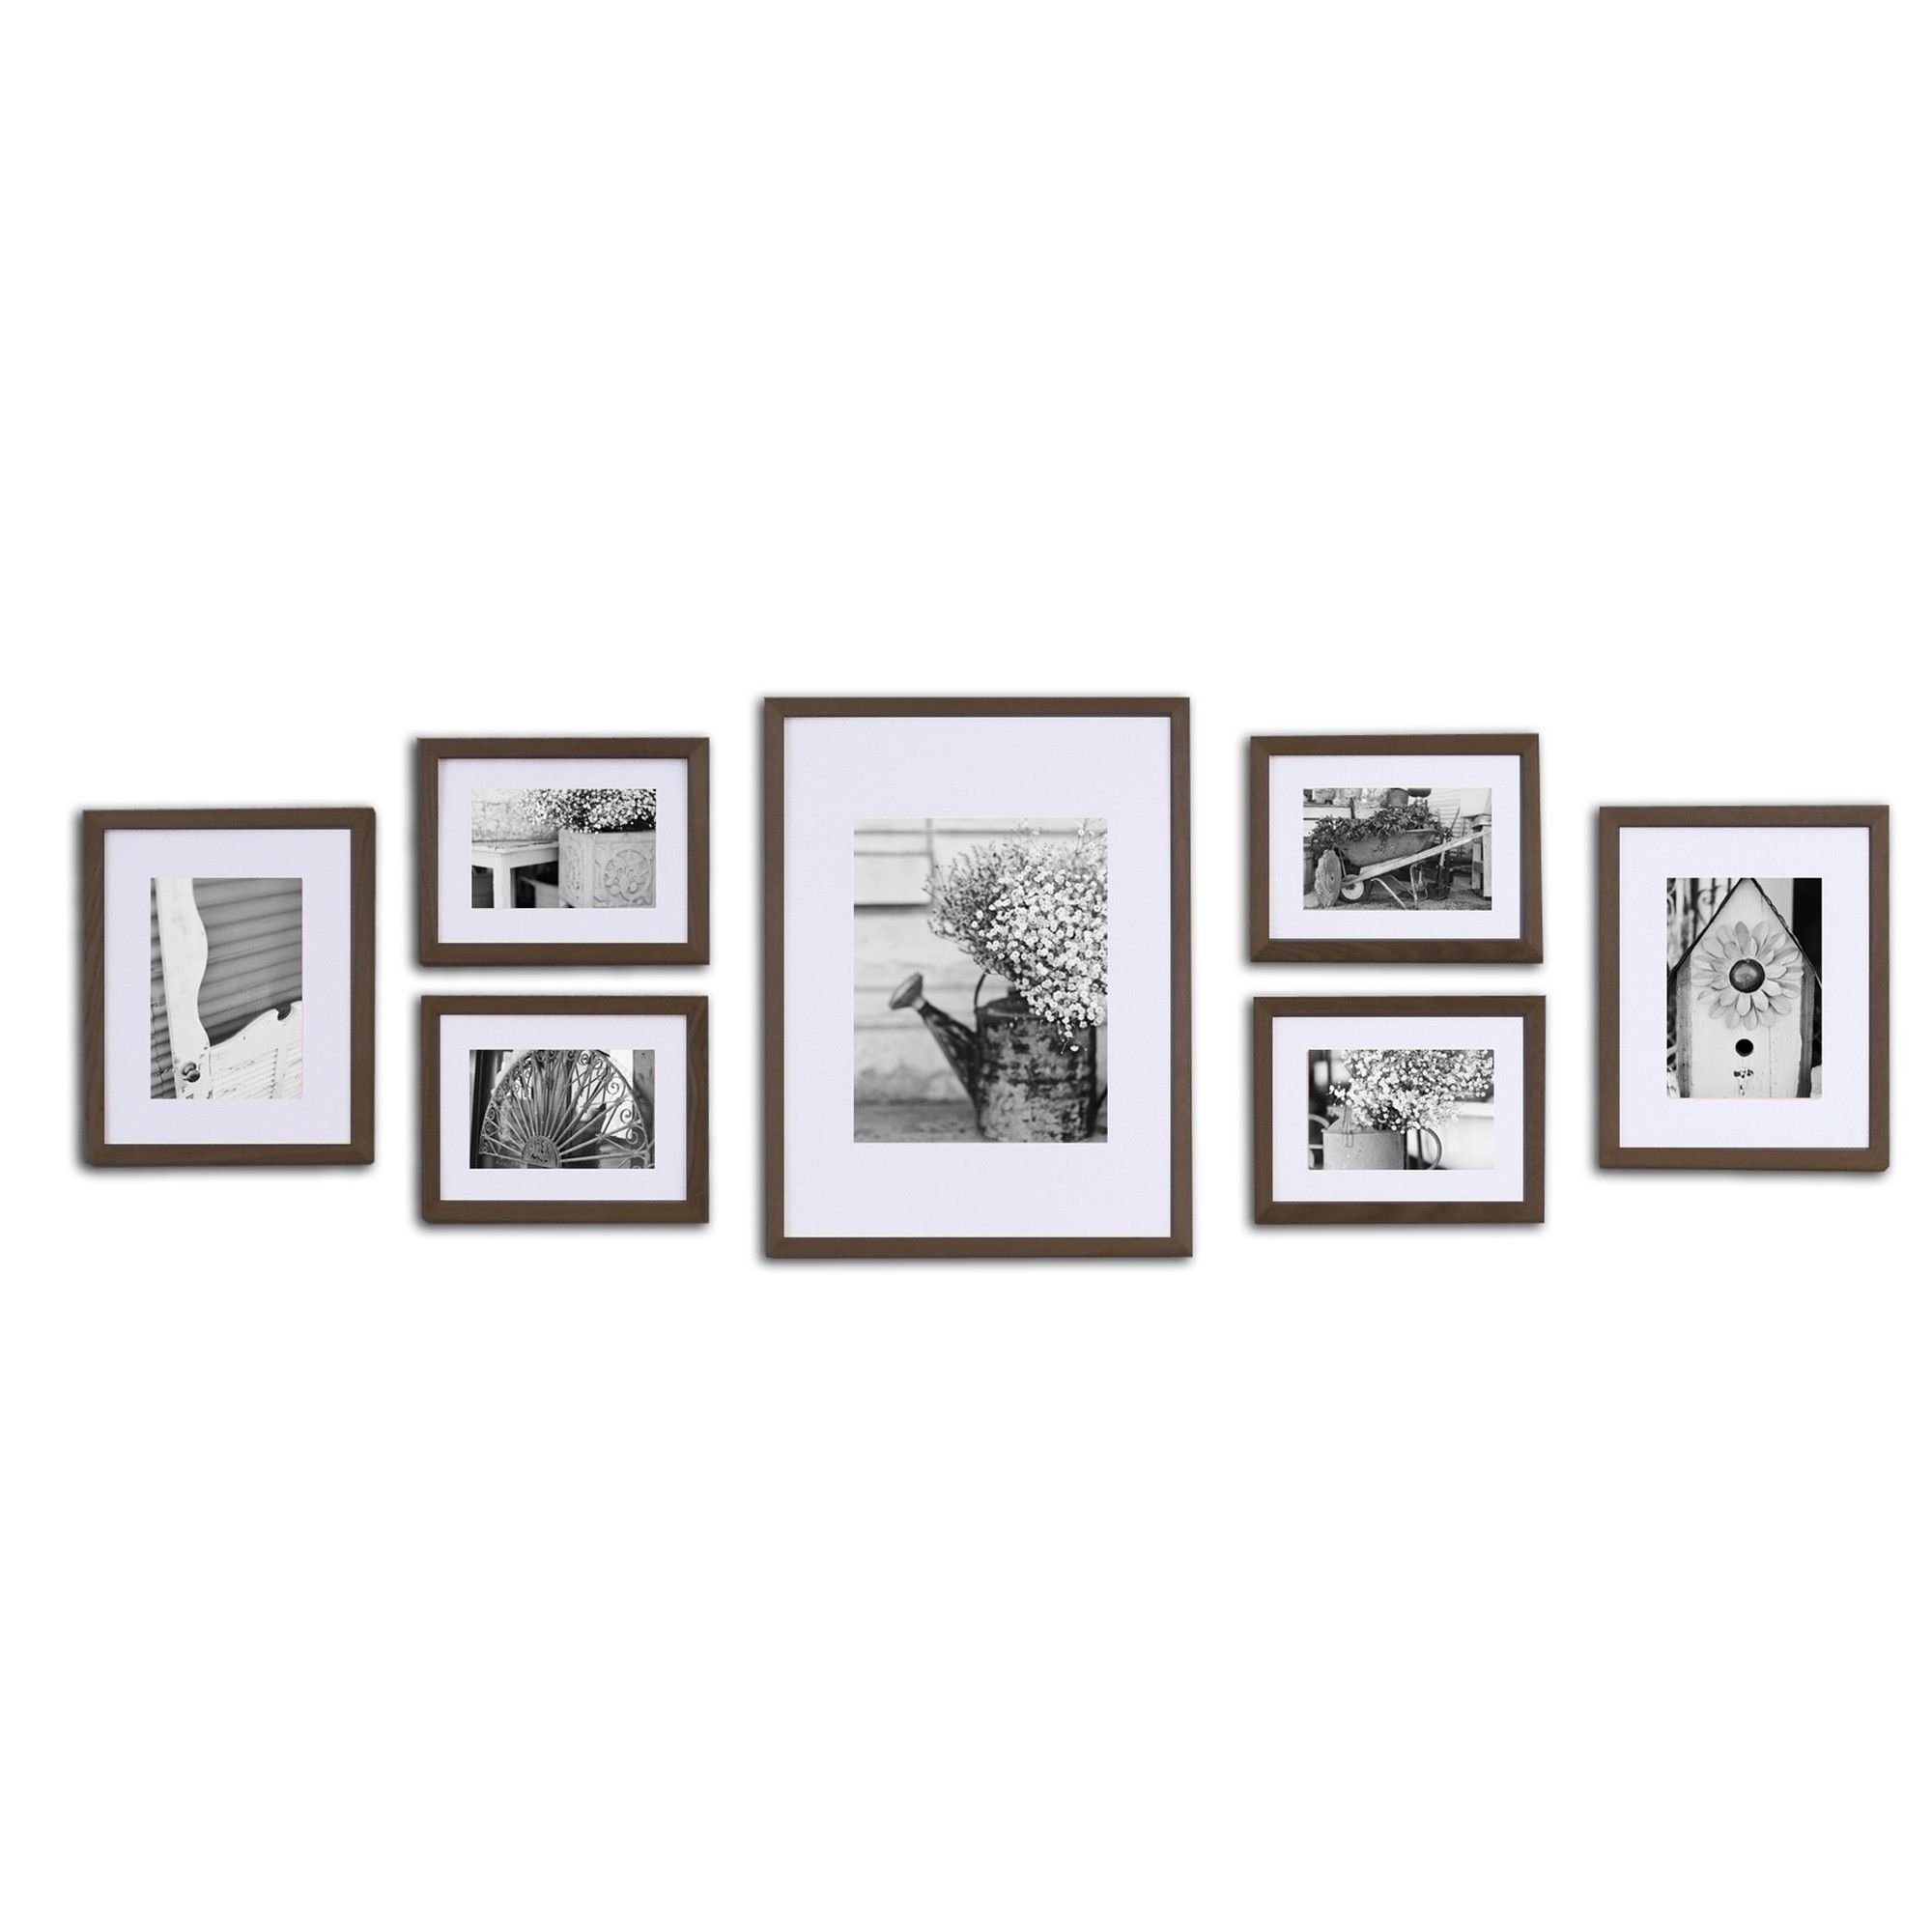 Features solid wood 7 piece wall frame set with usable artwork features solid wood 7 piece wall frame set with usable artwork jeuxipadfo Image collections